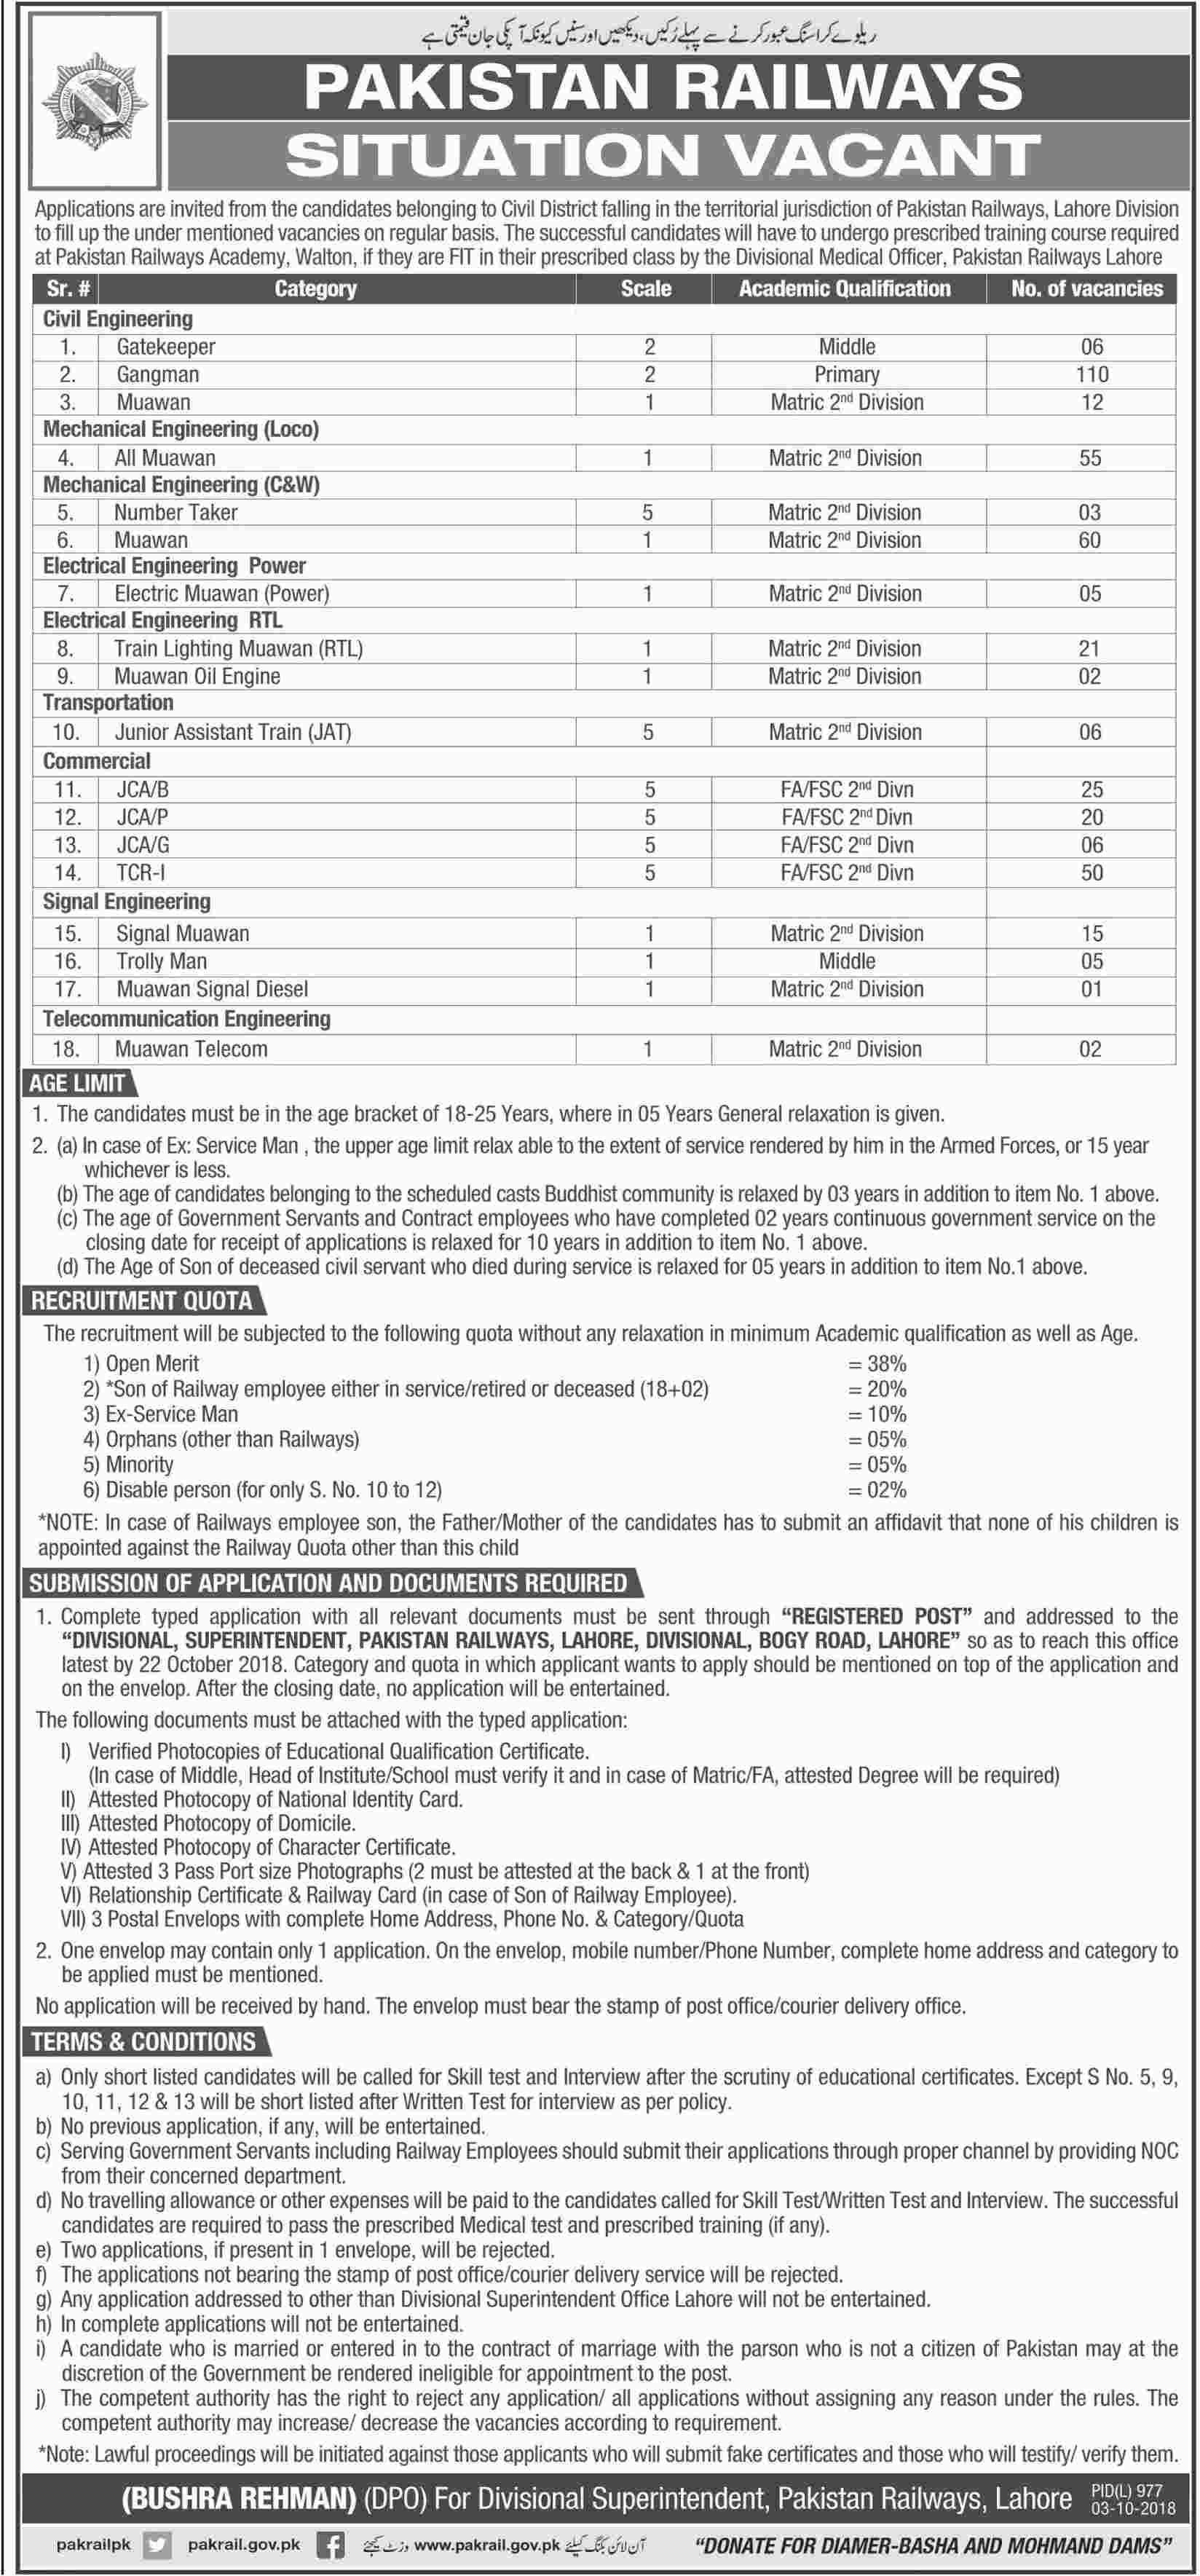 pakistan railway jobs 2018 Pakistan railways, Railway